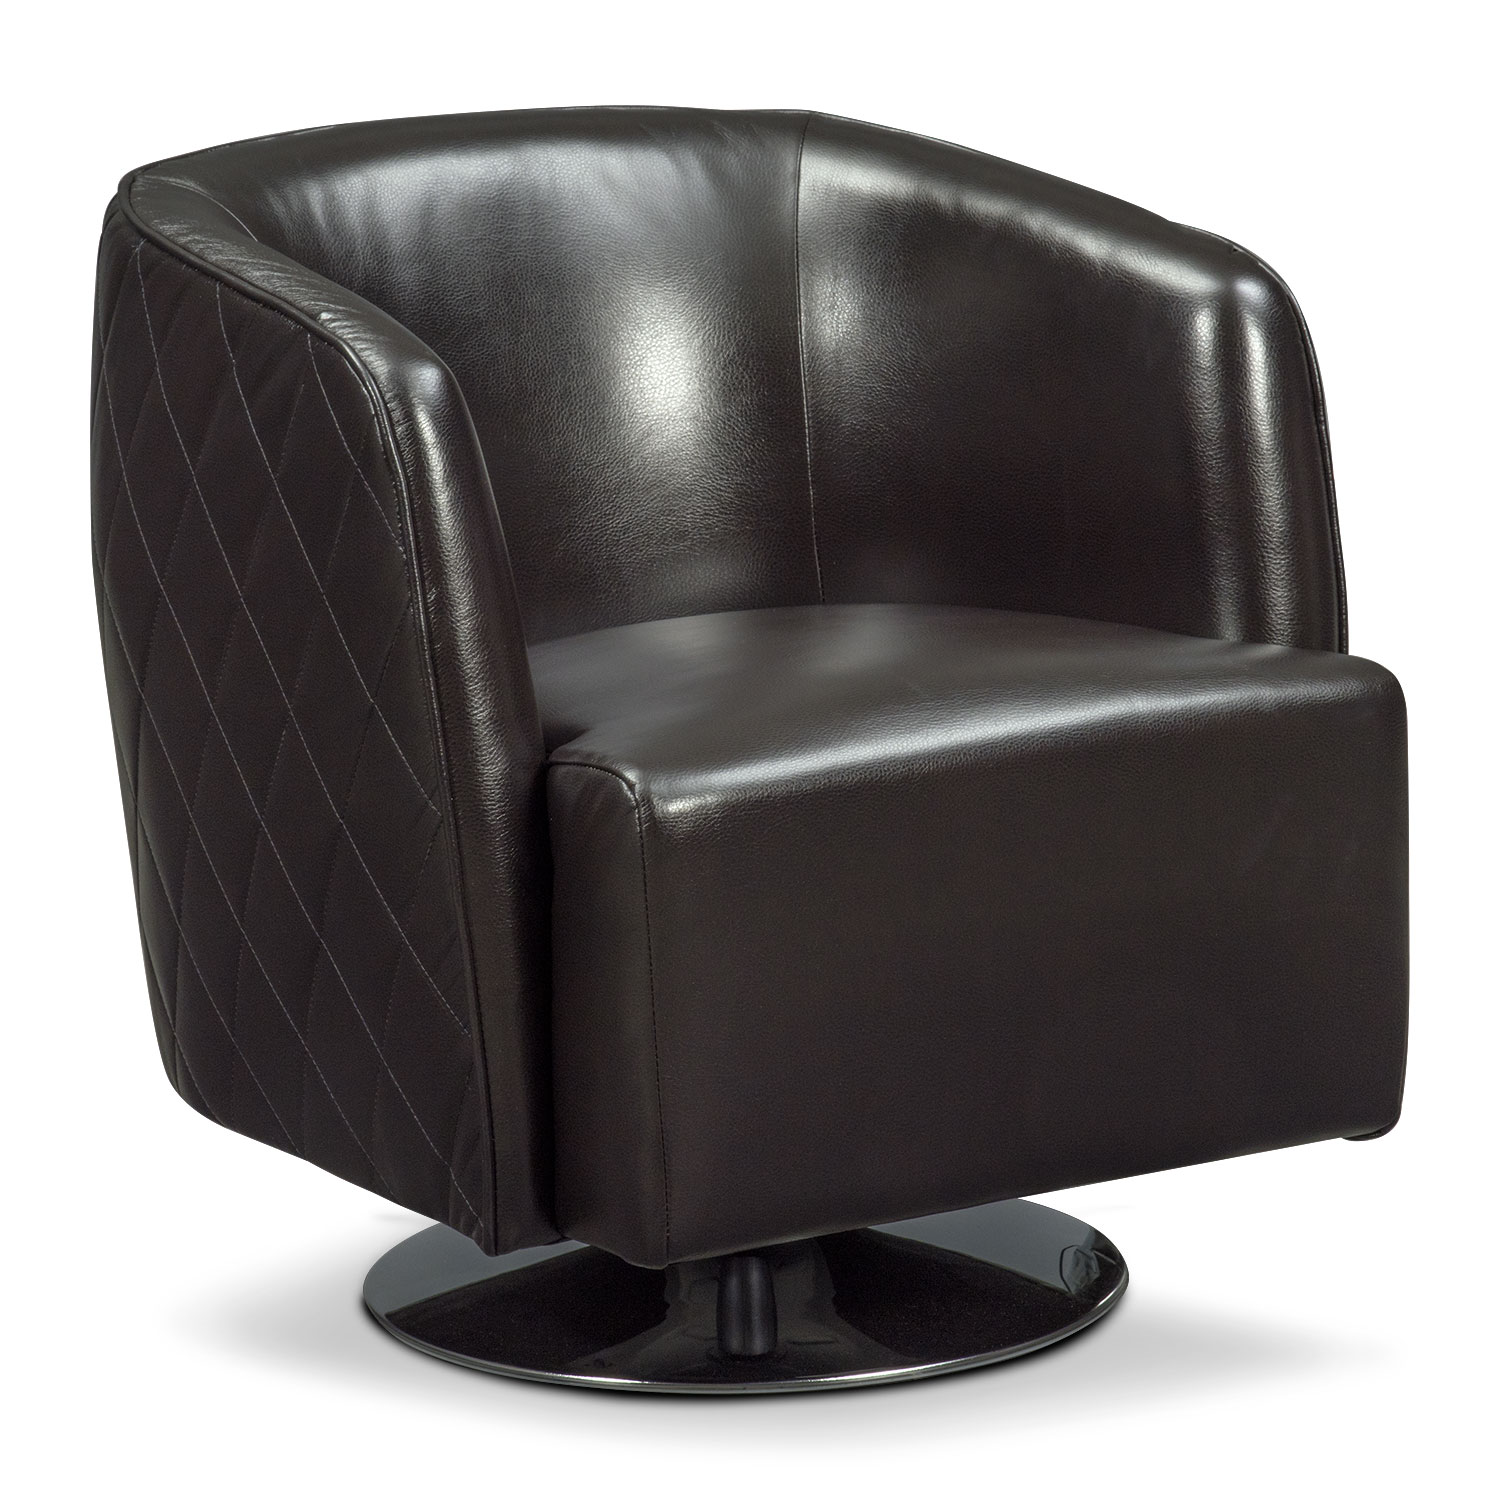 Santana Swivel Chair - Black